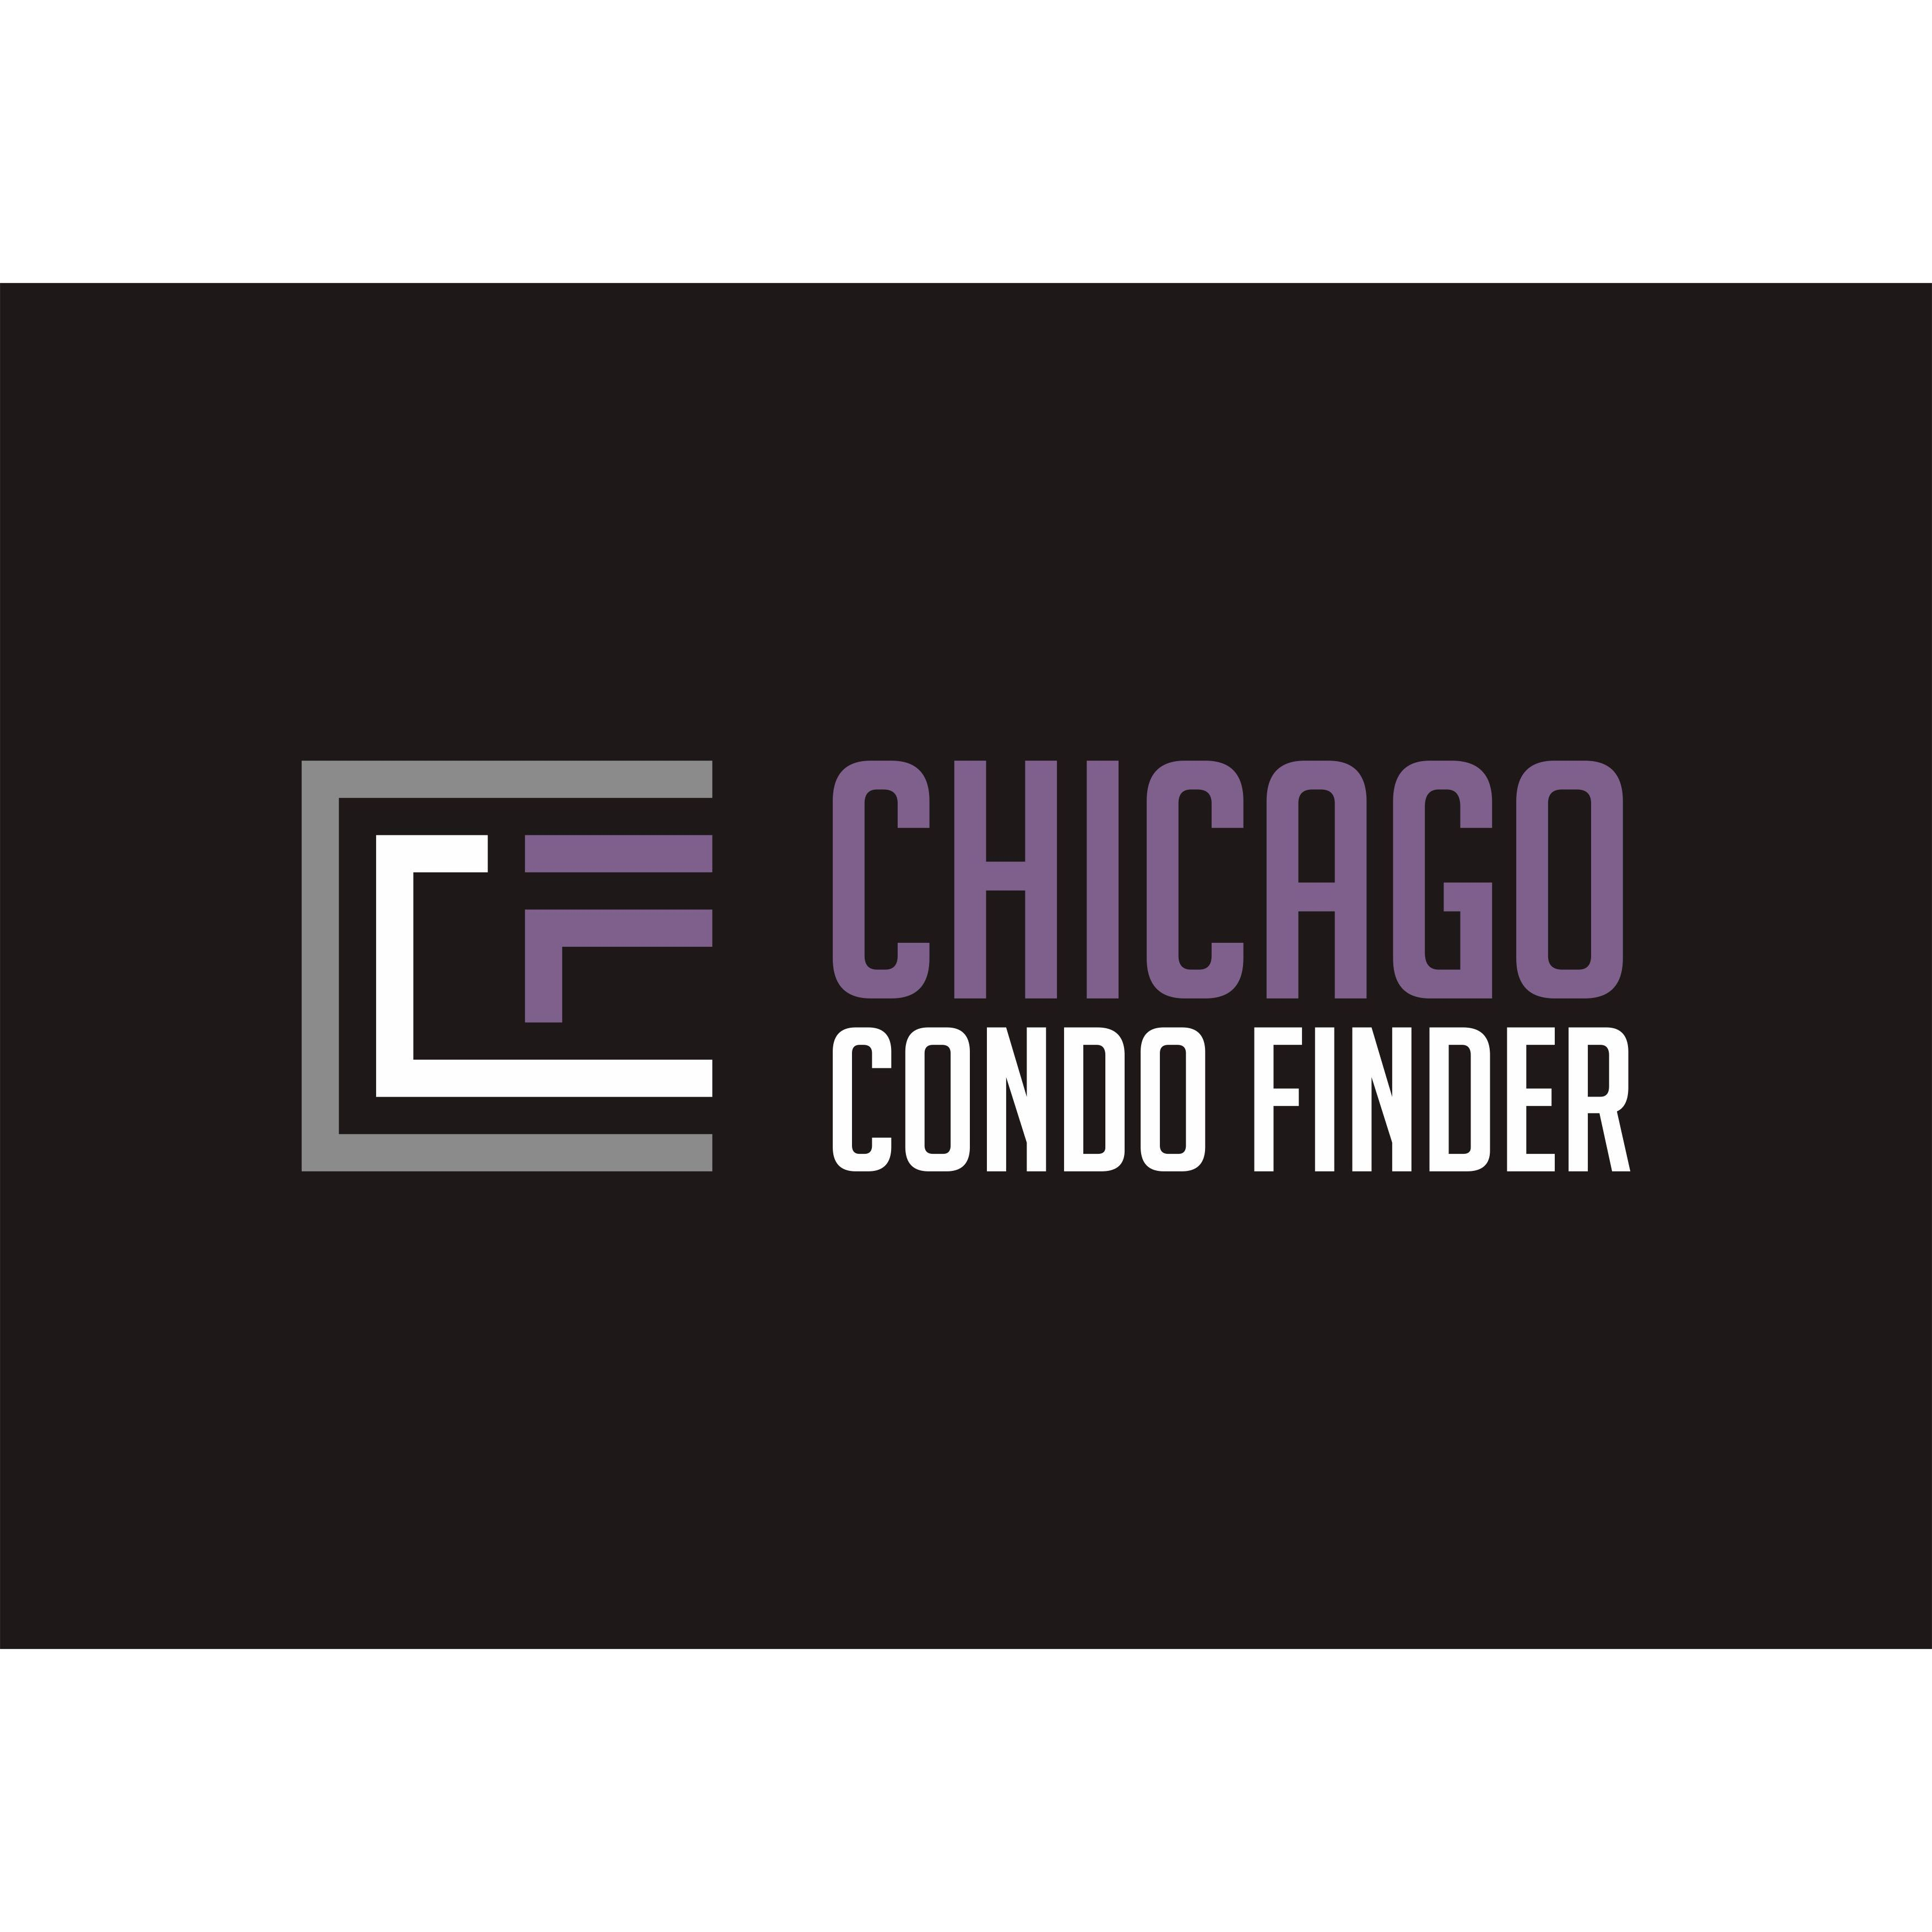 Chicago Condo Finder - Chicago, IL - Condominiums